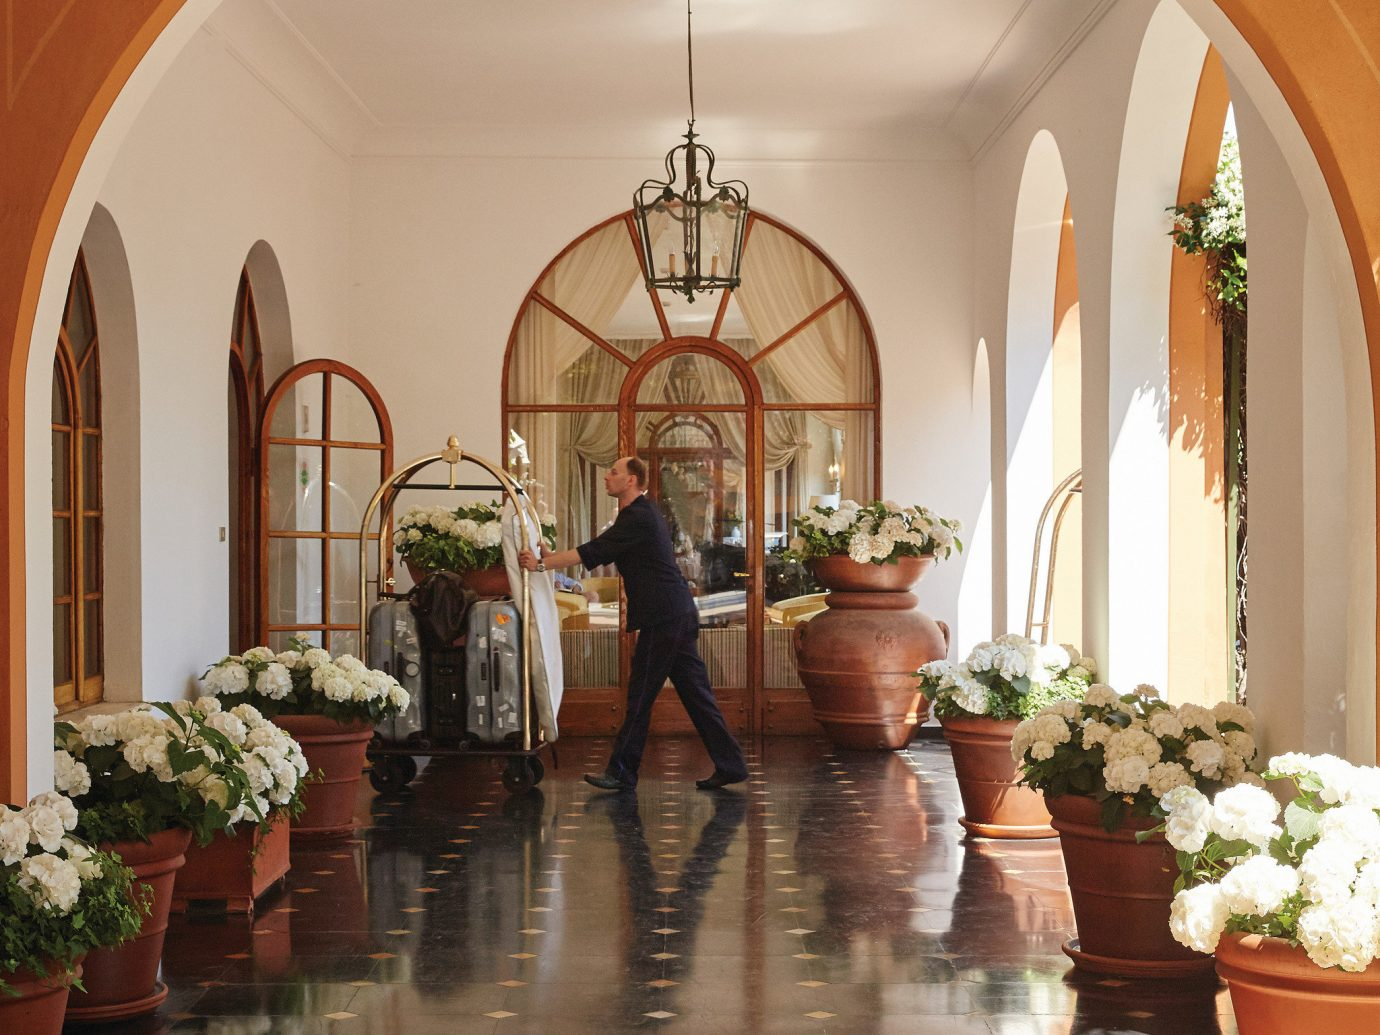 Hotels Luxury Travel arch interior design flower home chapel floristry place of worship aisle function hall hacienda Lobby ceremony